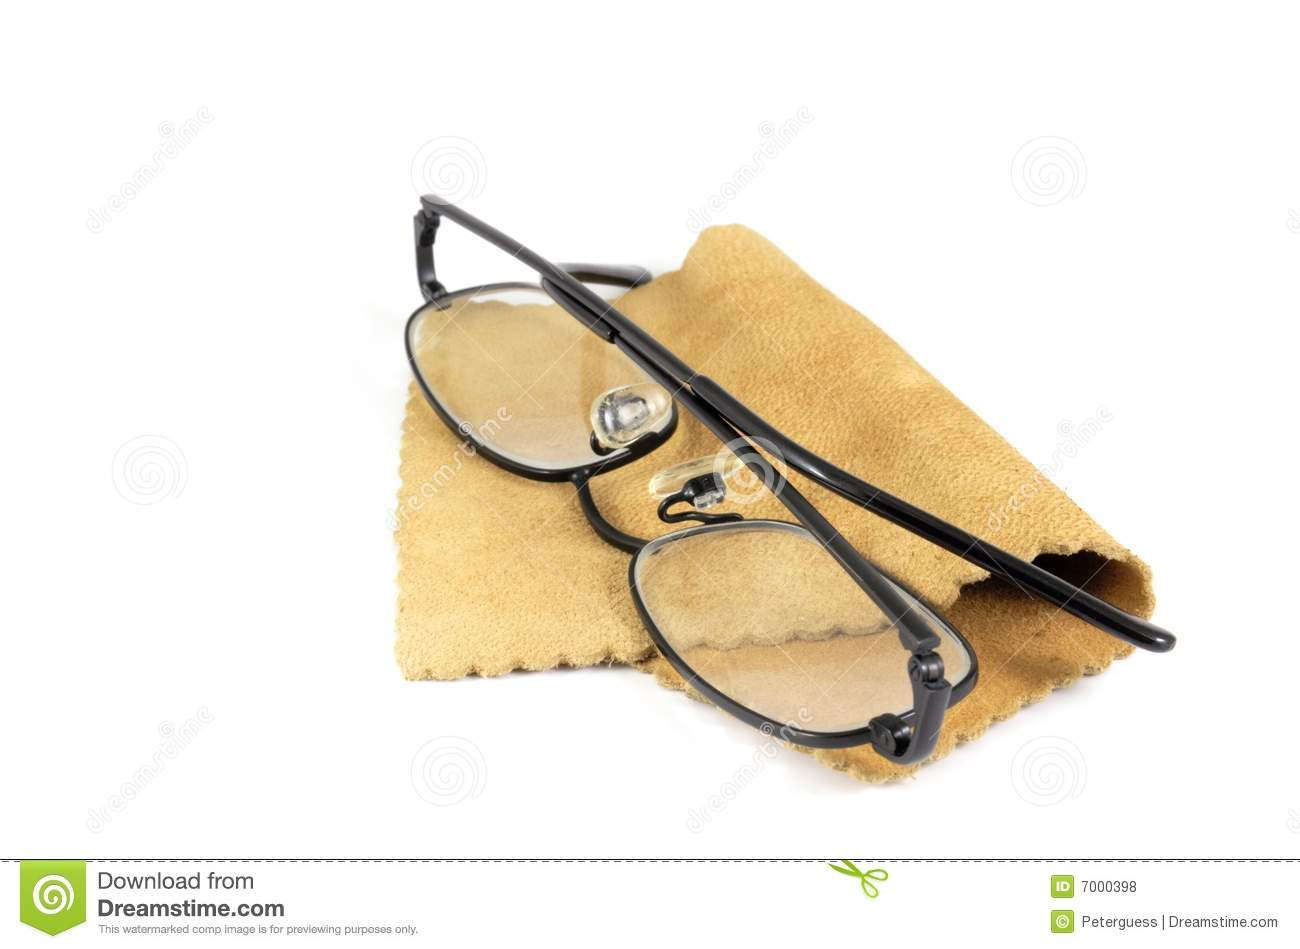 how to clean spectacles properly